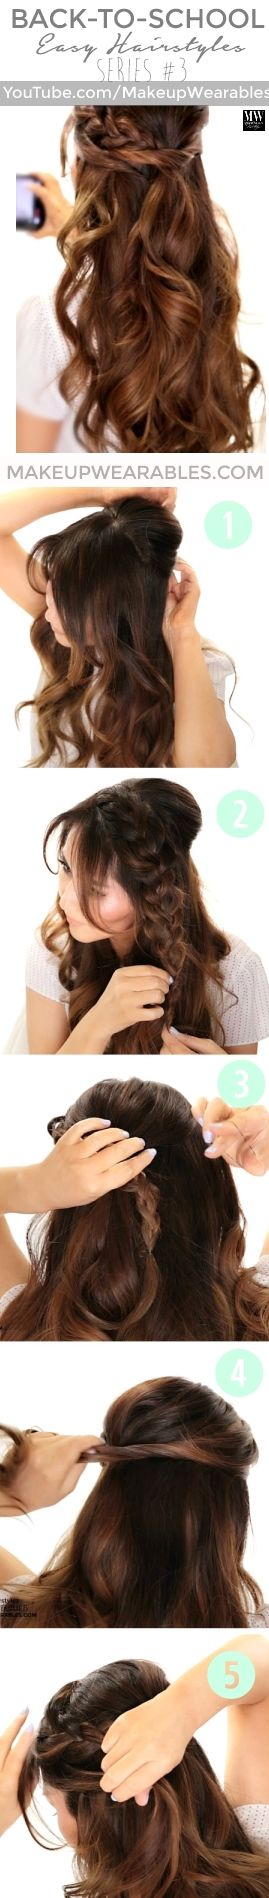 3 Totally Easy Back-to-School #Hairstyles | Cute #Hair Tutorial | #style #styles #fashion #braids #braided #braid #bts #backtoschool #easyhairstyles #updos #updo #halfup #longhair